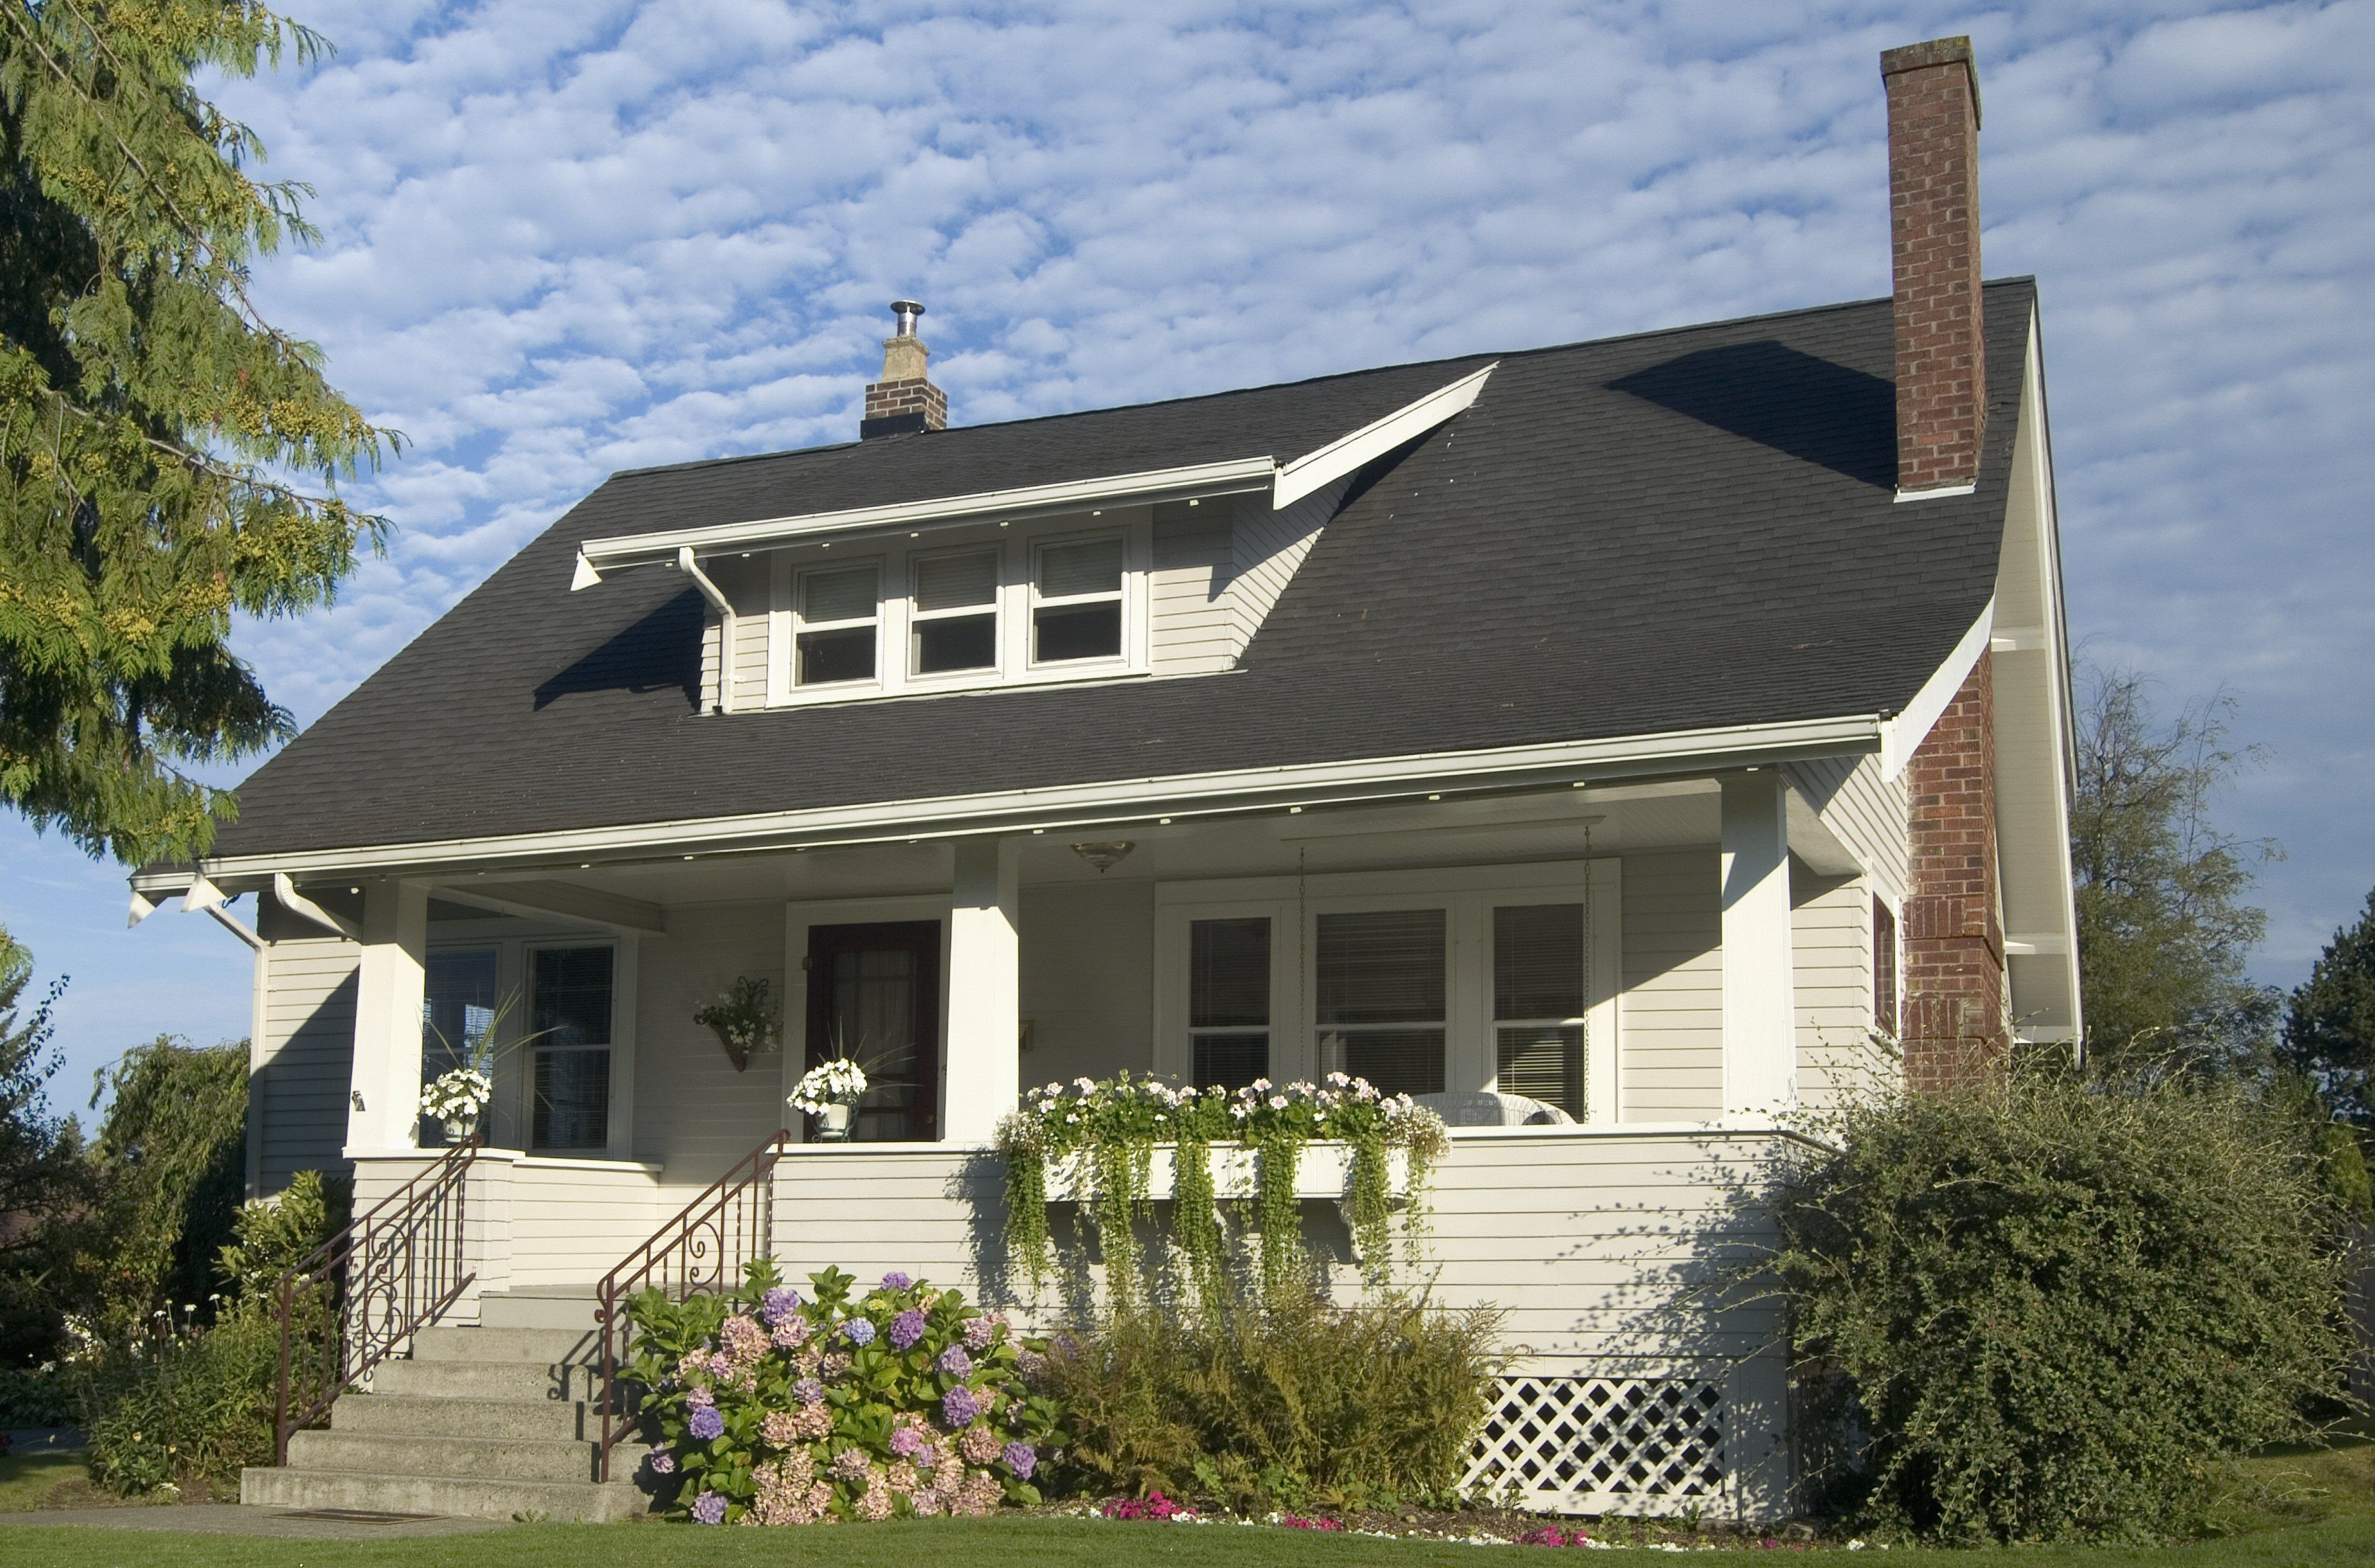 Bungalow with Shed Dormer